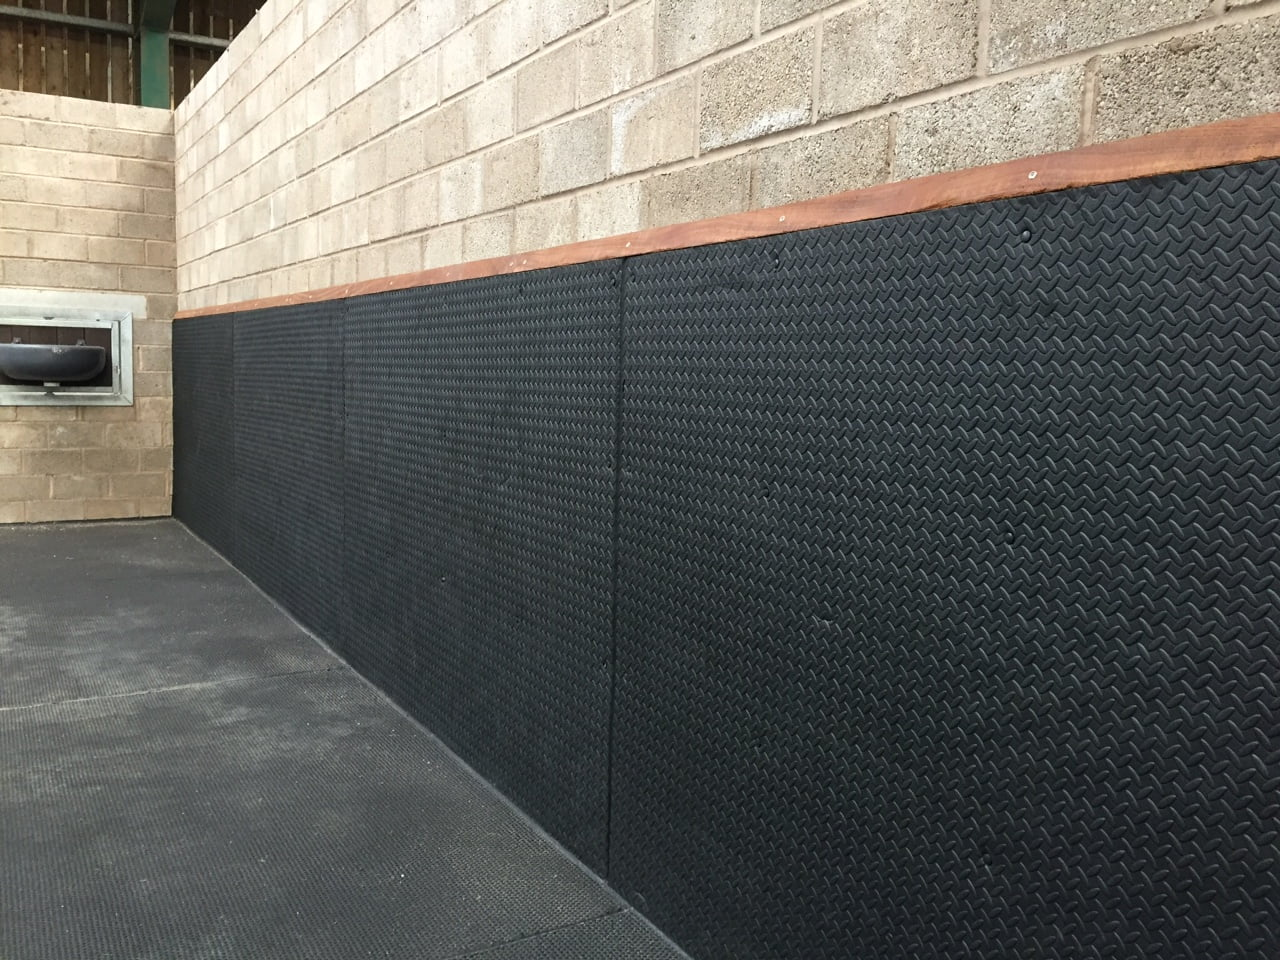 Rubber Stable Matting For Equine Applications From Quattro